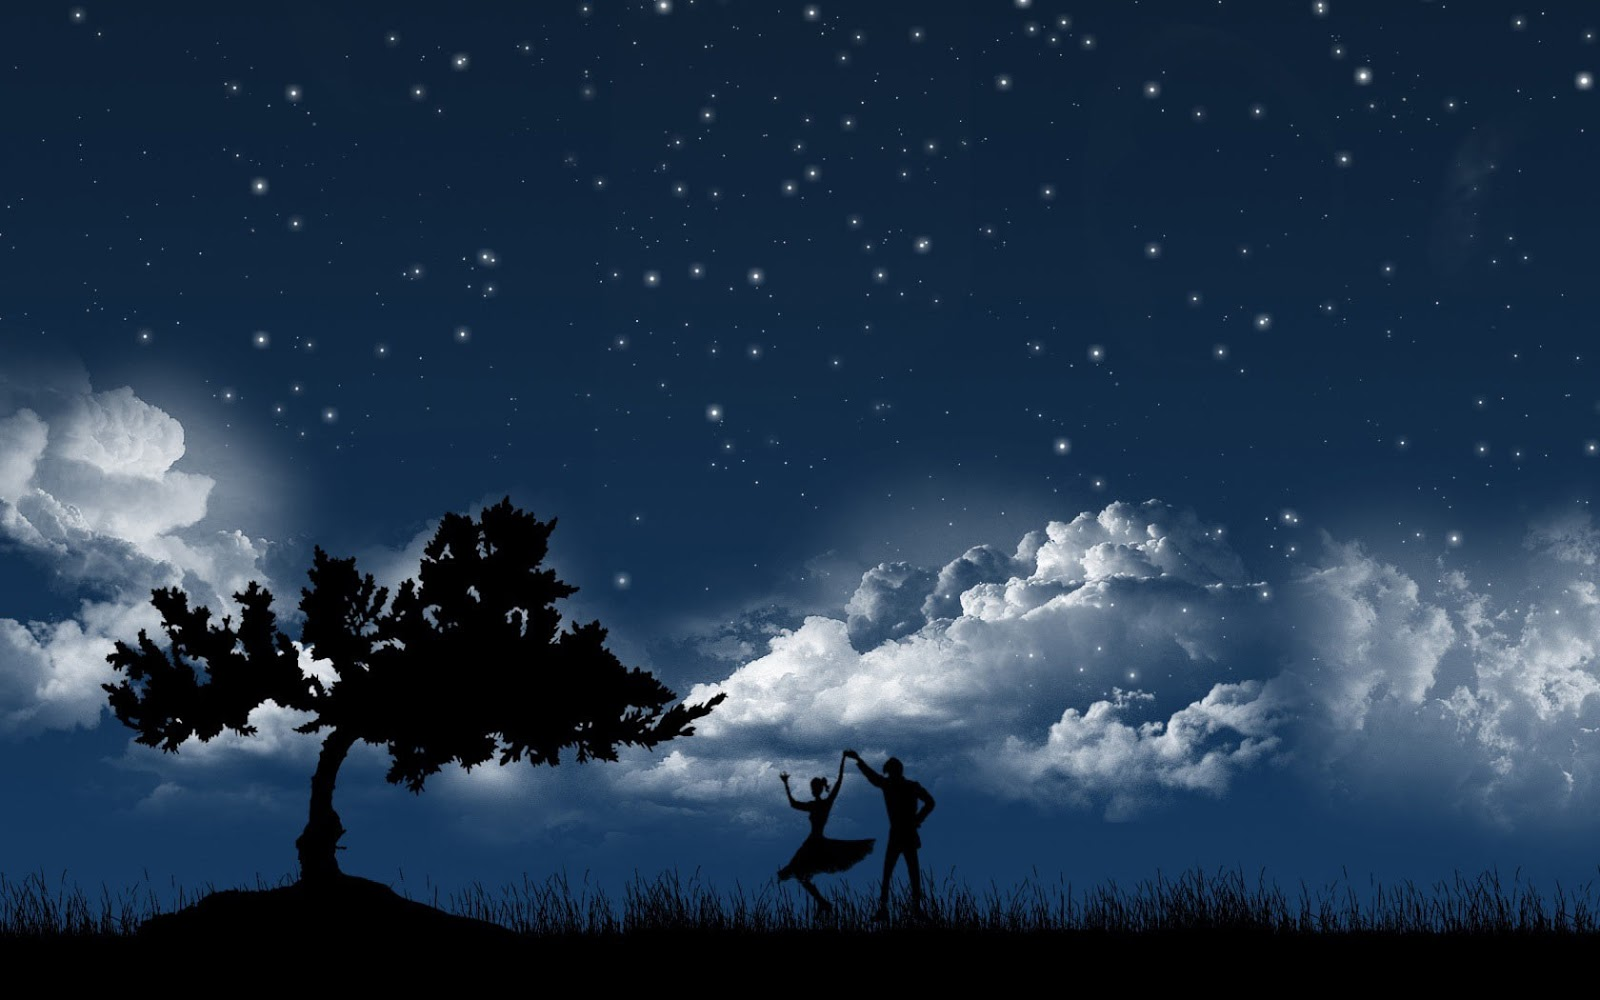 Good Night Wallpapers HD| HD Wallpapers ,Backgrounds ,Photos ,Pictures, Image ,PC